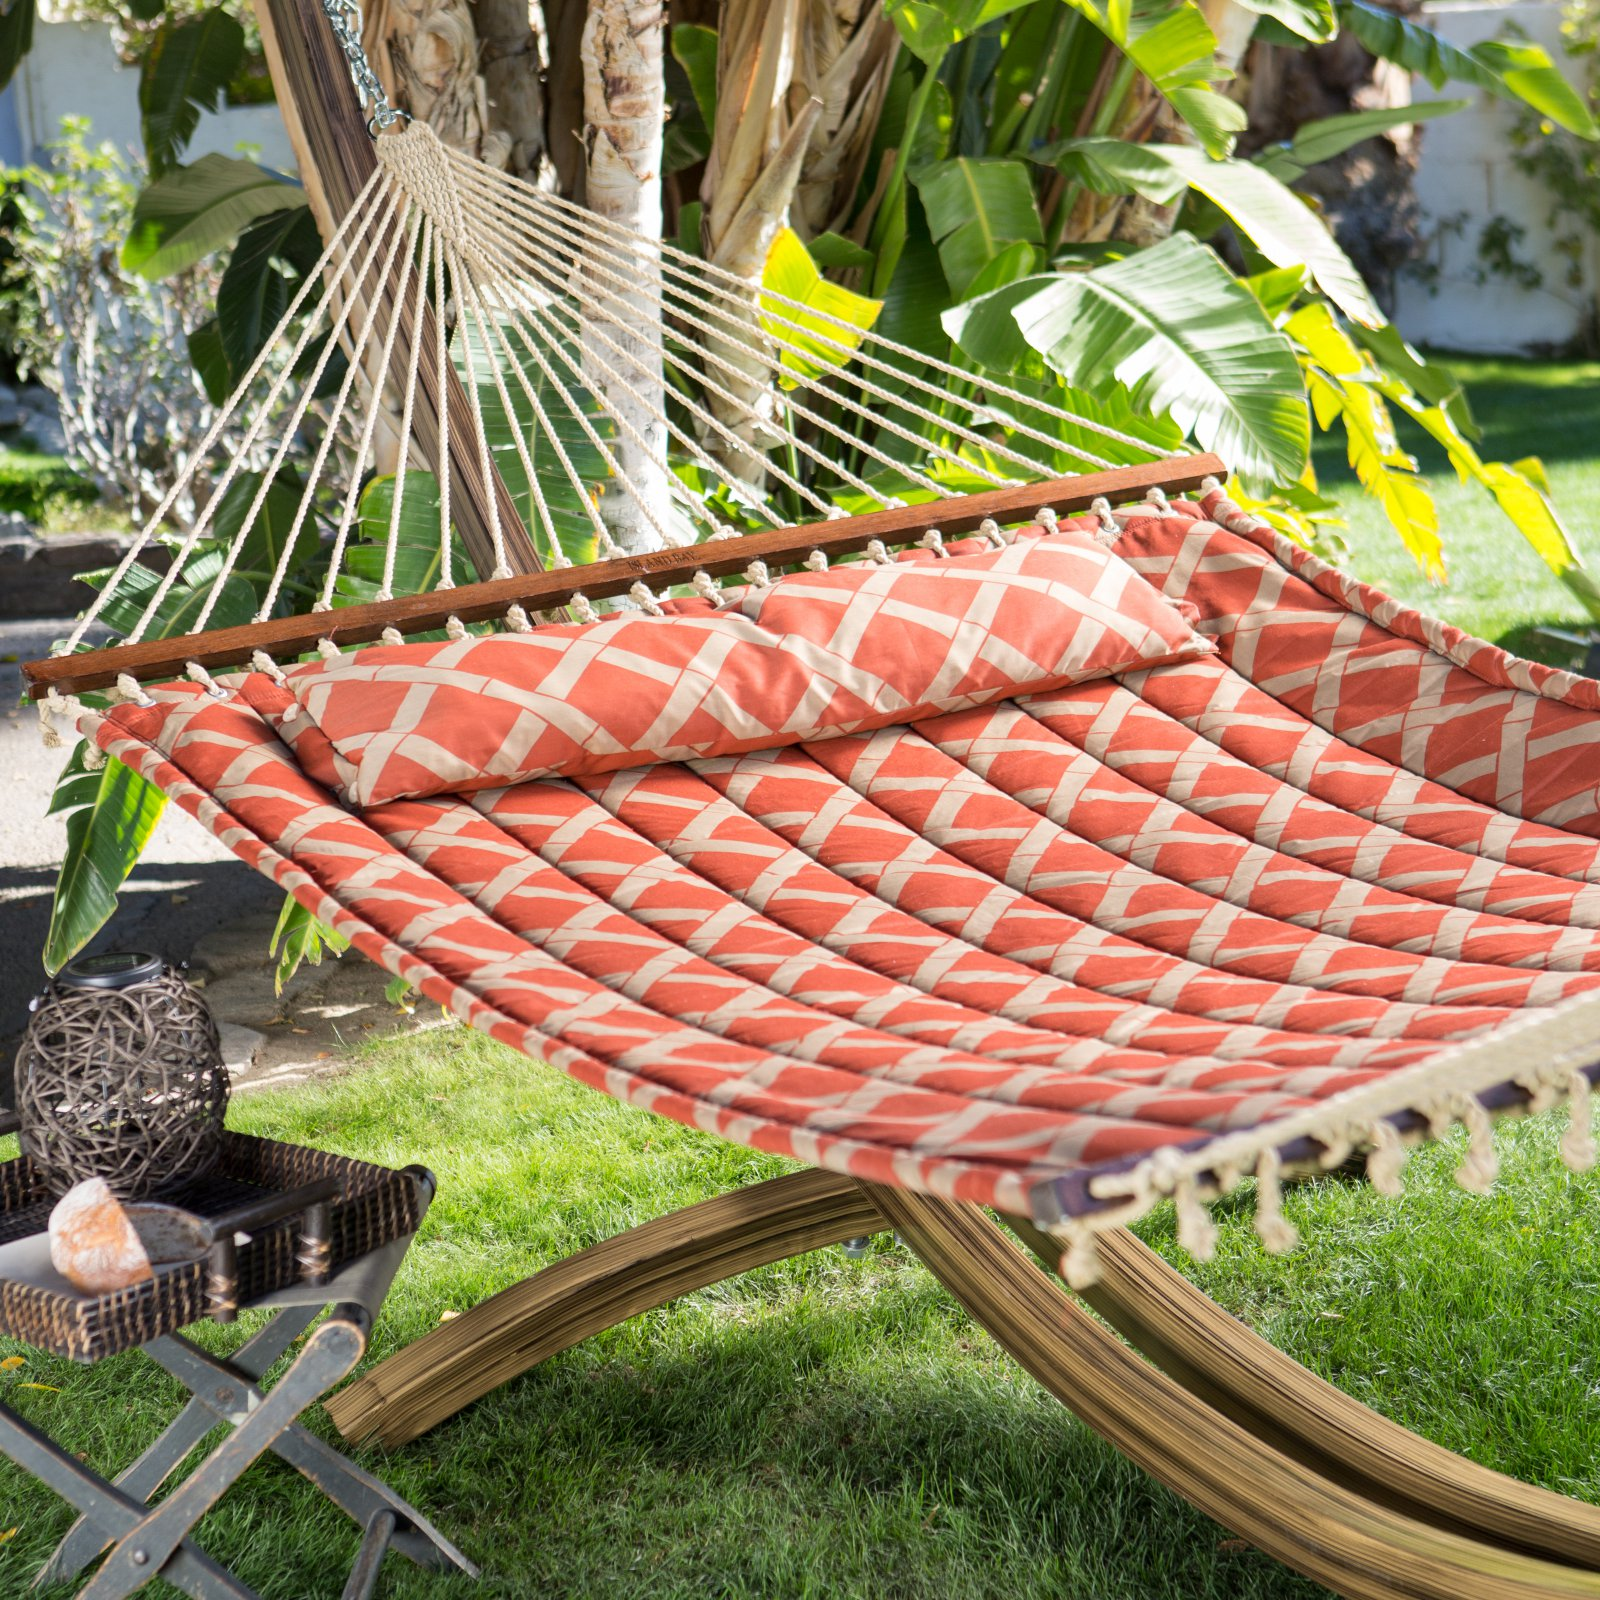 Coral Coast 13 ft. Tuscan Lattice Quilted 2 Person Double Hammock - Sienna/Taupe